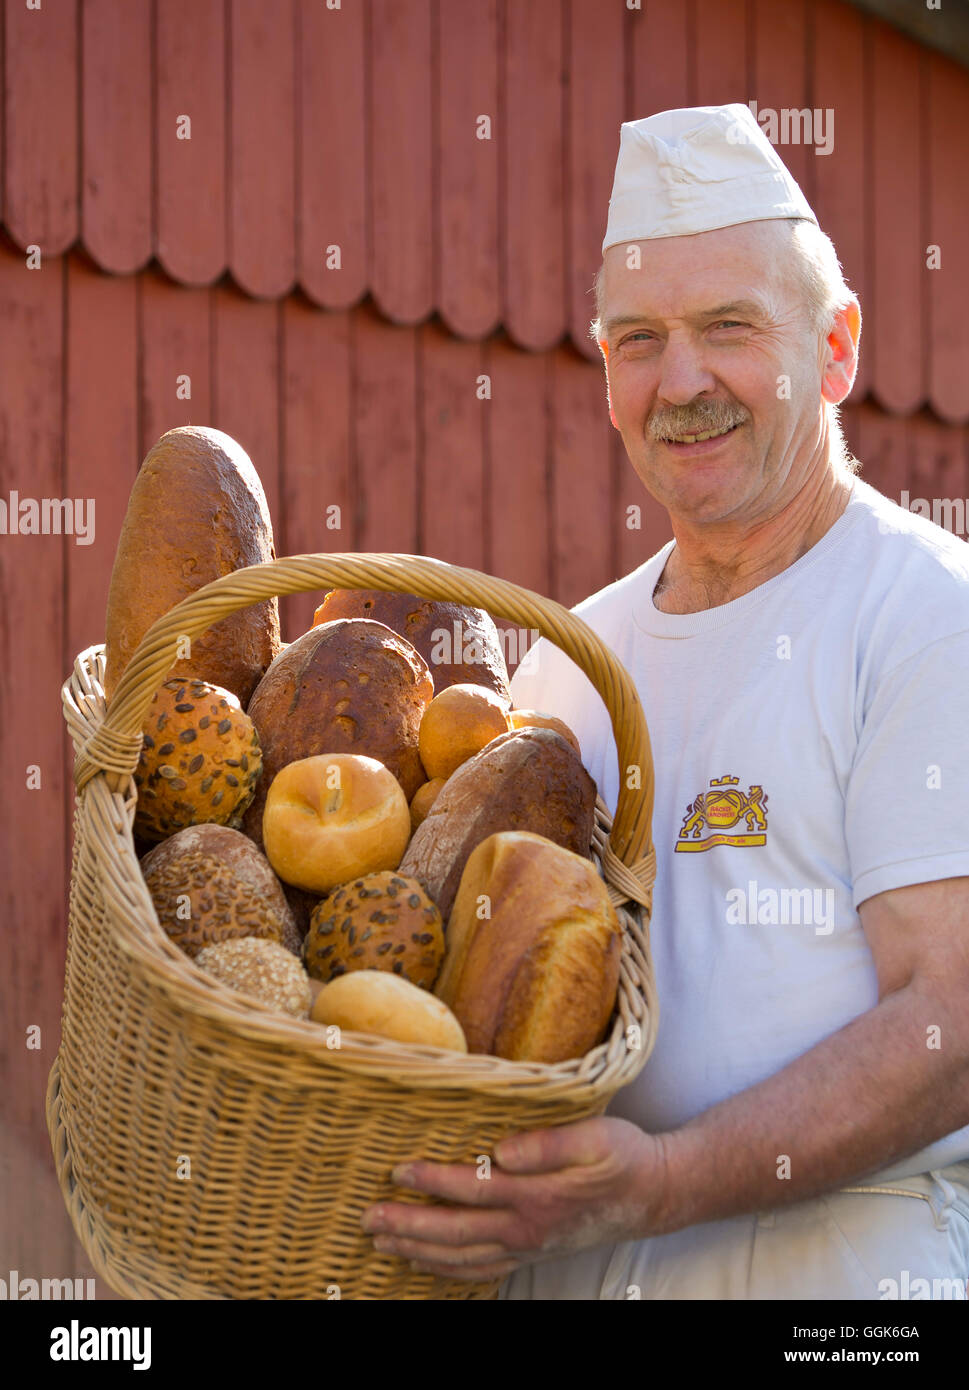 Baker Erwin Oehl with a basket of baked goods at his backery, Frankenau, Hesse, Germany, Europe - Stock Image